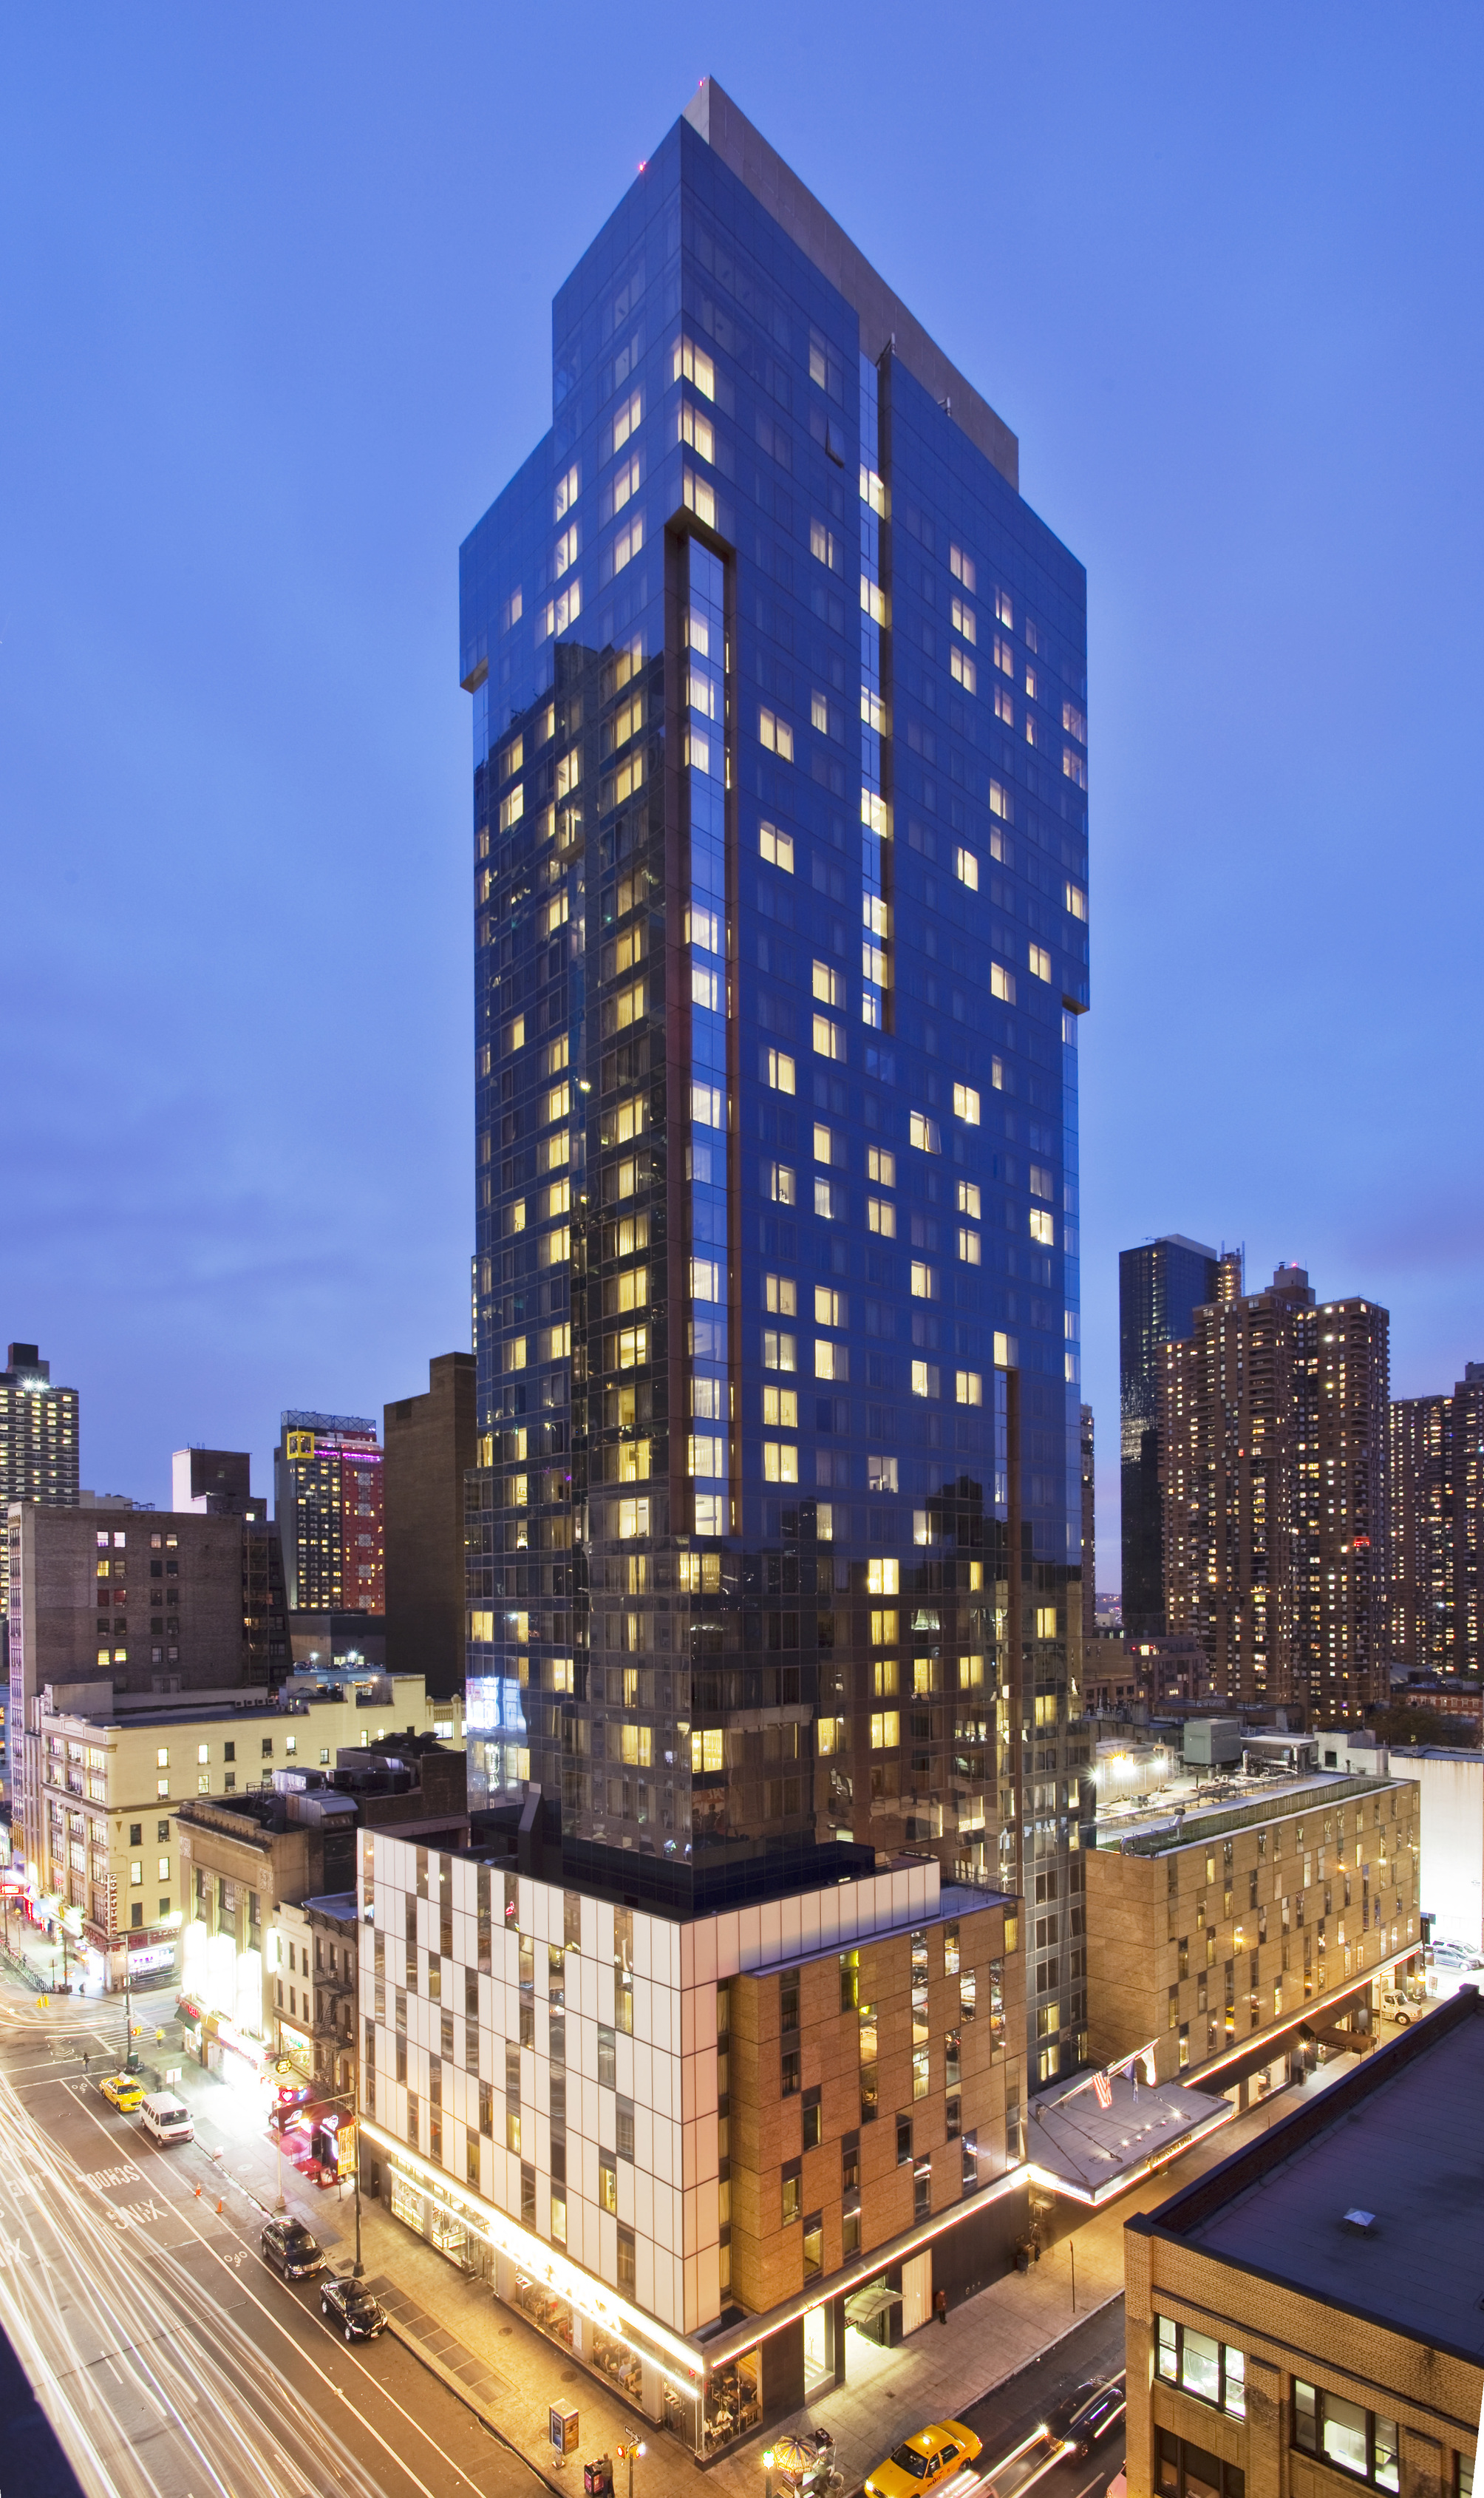 Hotel intercontinental new york times square em nova for Hotel centro new york